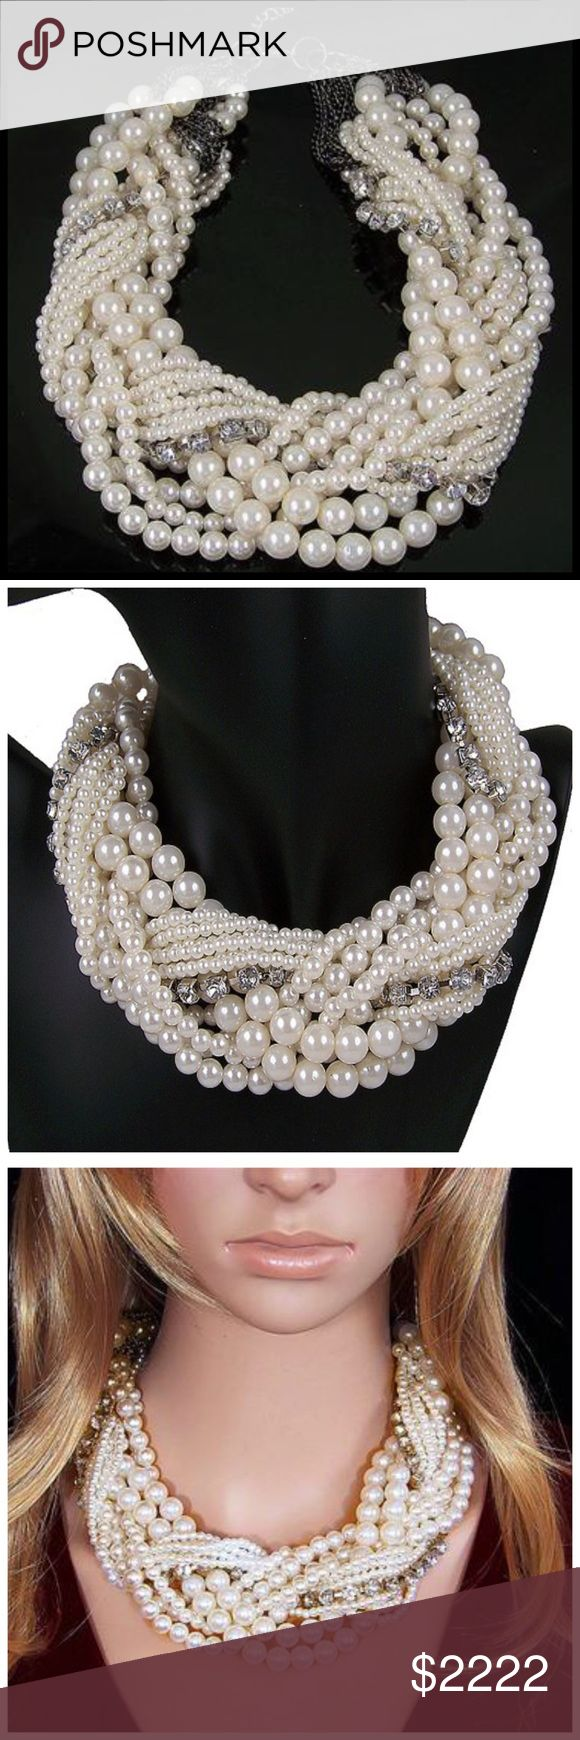 ‼️COMING SOON Chunky Twisted Pearl Necklace ‼️‼️ PLEASE LIKE THIS LISTING TO BE NOTIFIED WHEN THIS ITEM IS LISTED ‼️‼️ Jewelry Necklaces